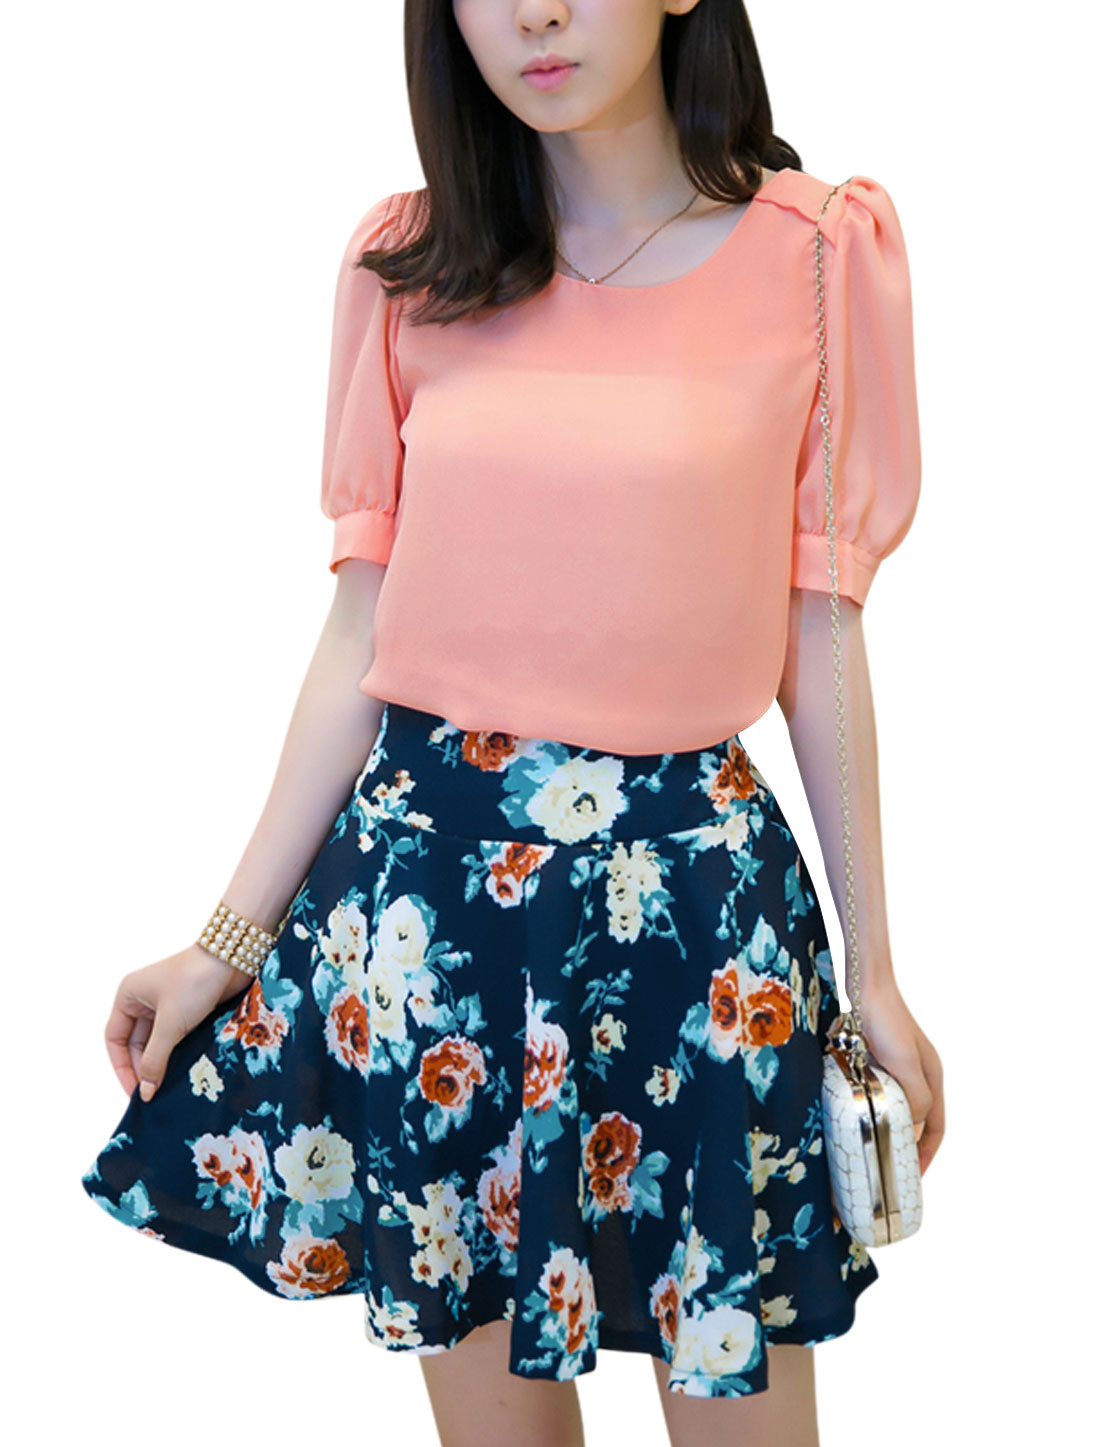 Lady Floral Prints Navy Blue Skirt w Half Puff Sleeve Salmon Top M